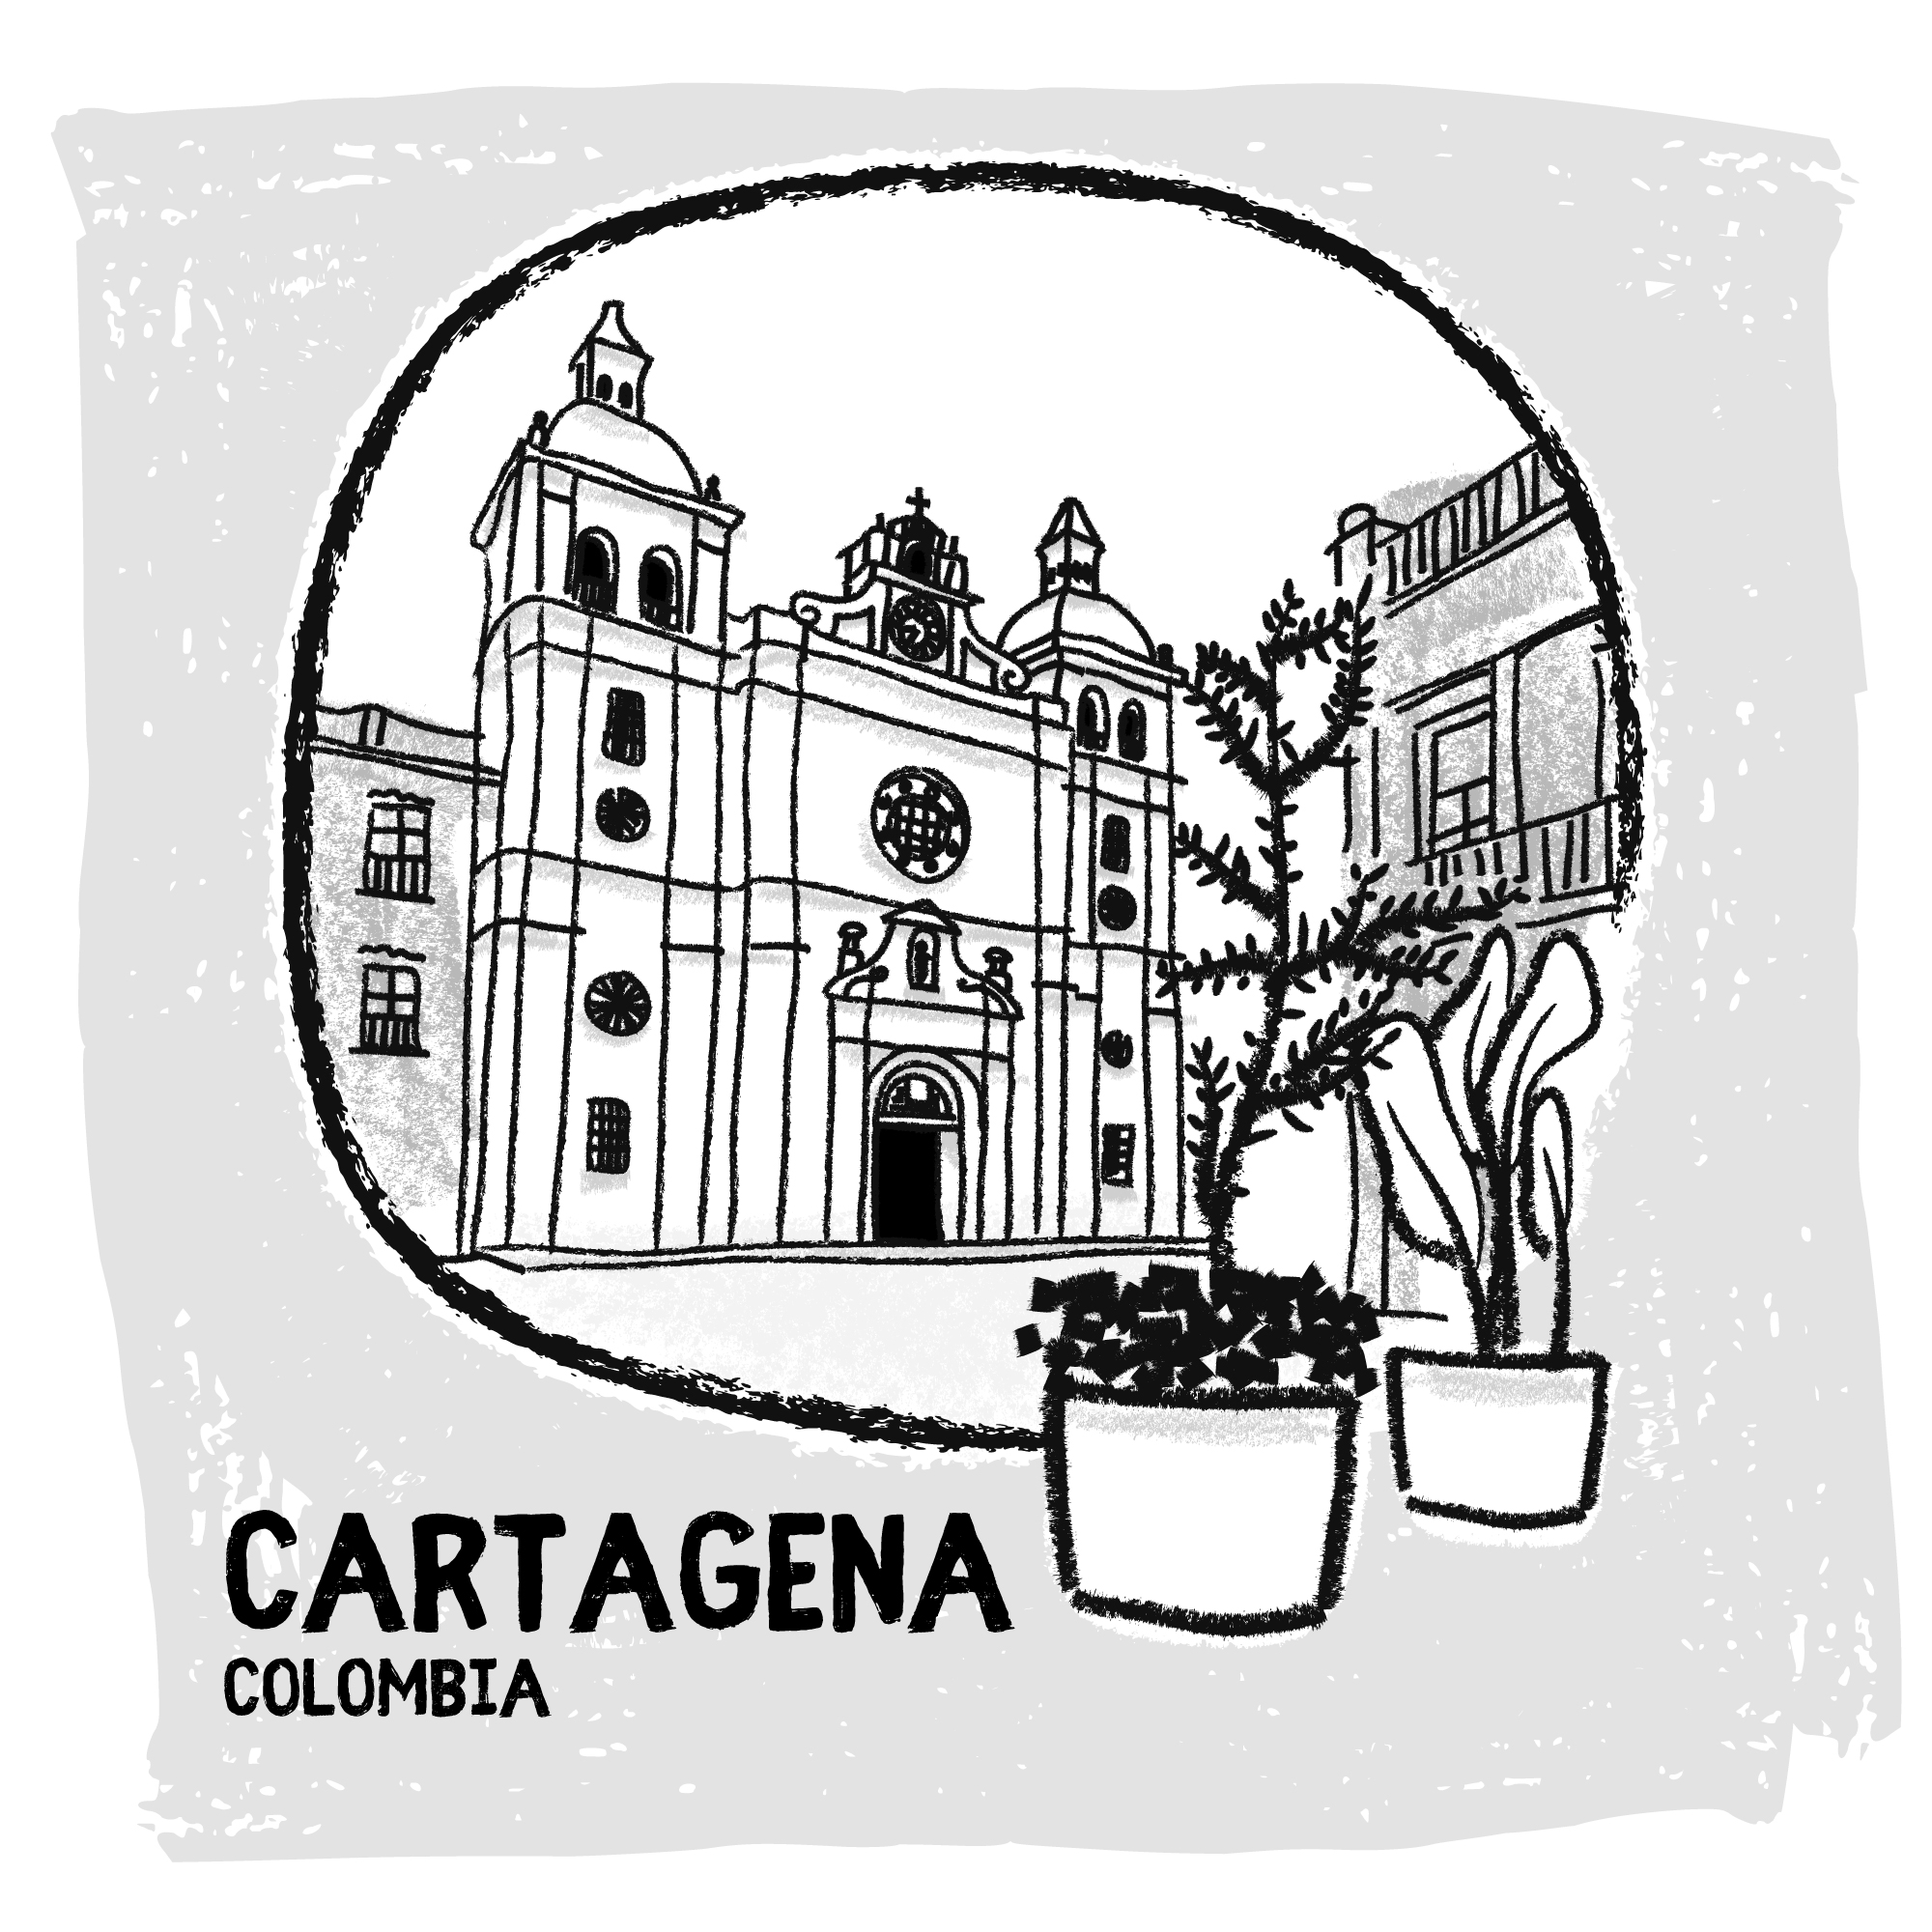 Caratagena, Colombia digital travel sketch